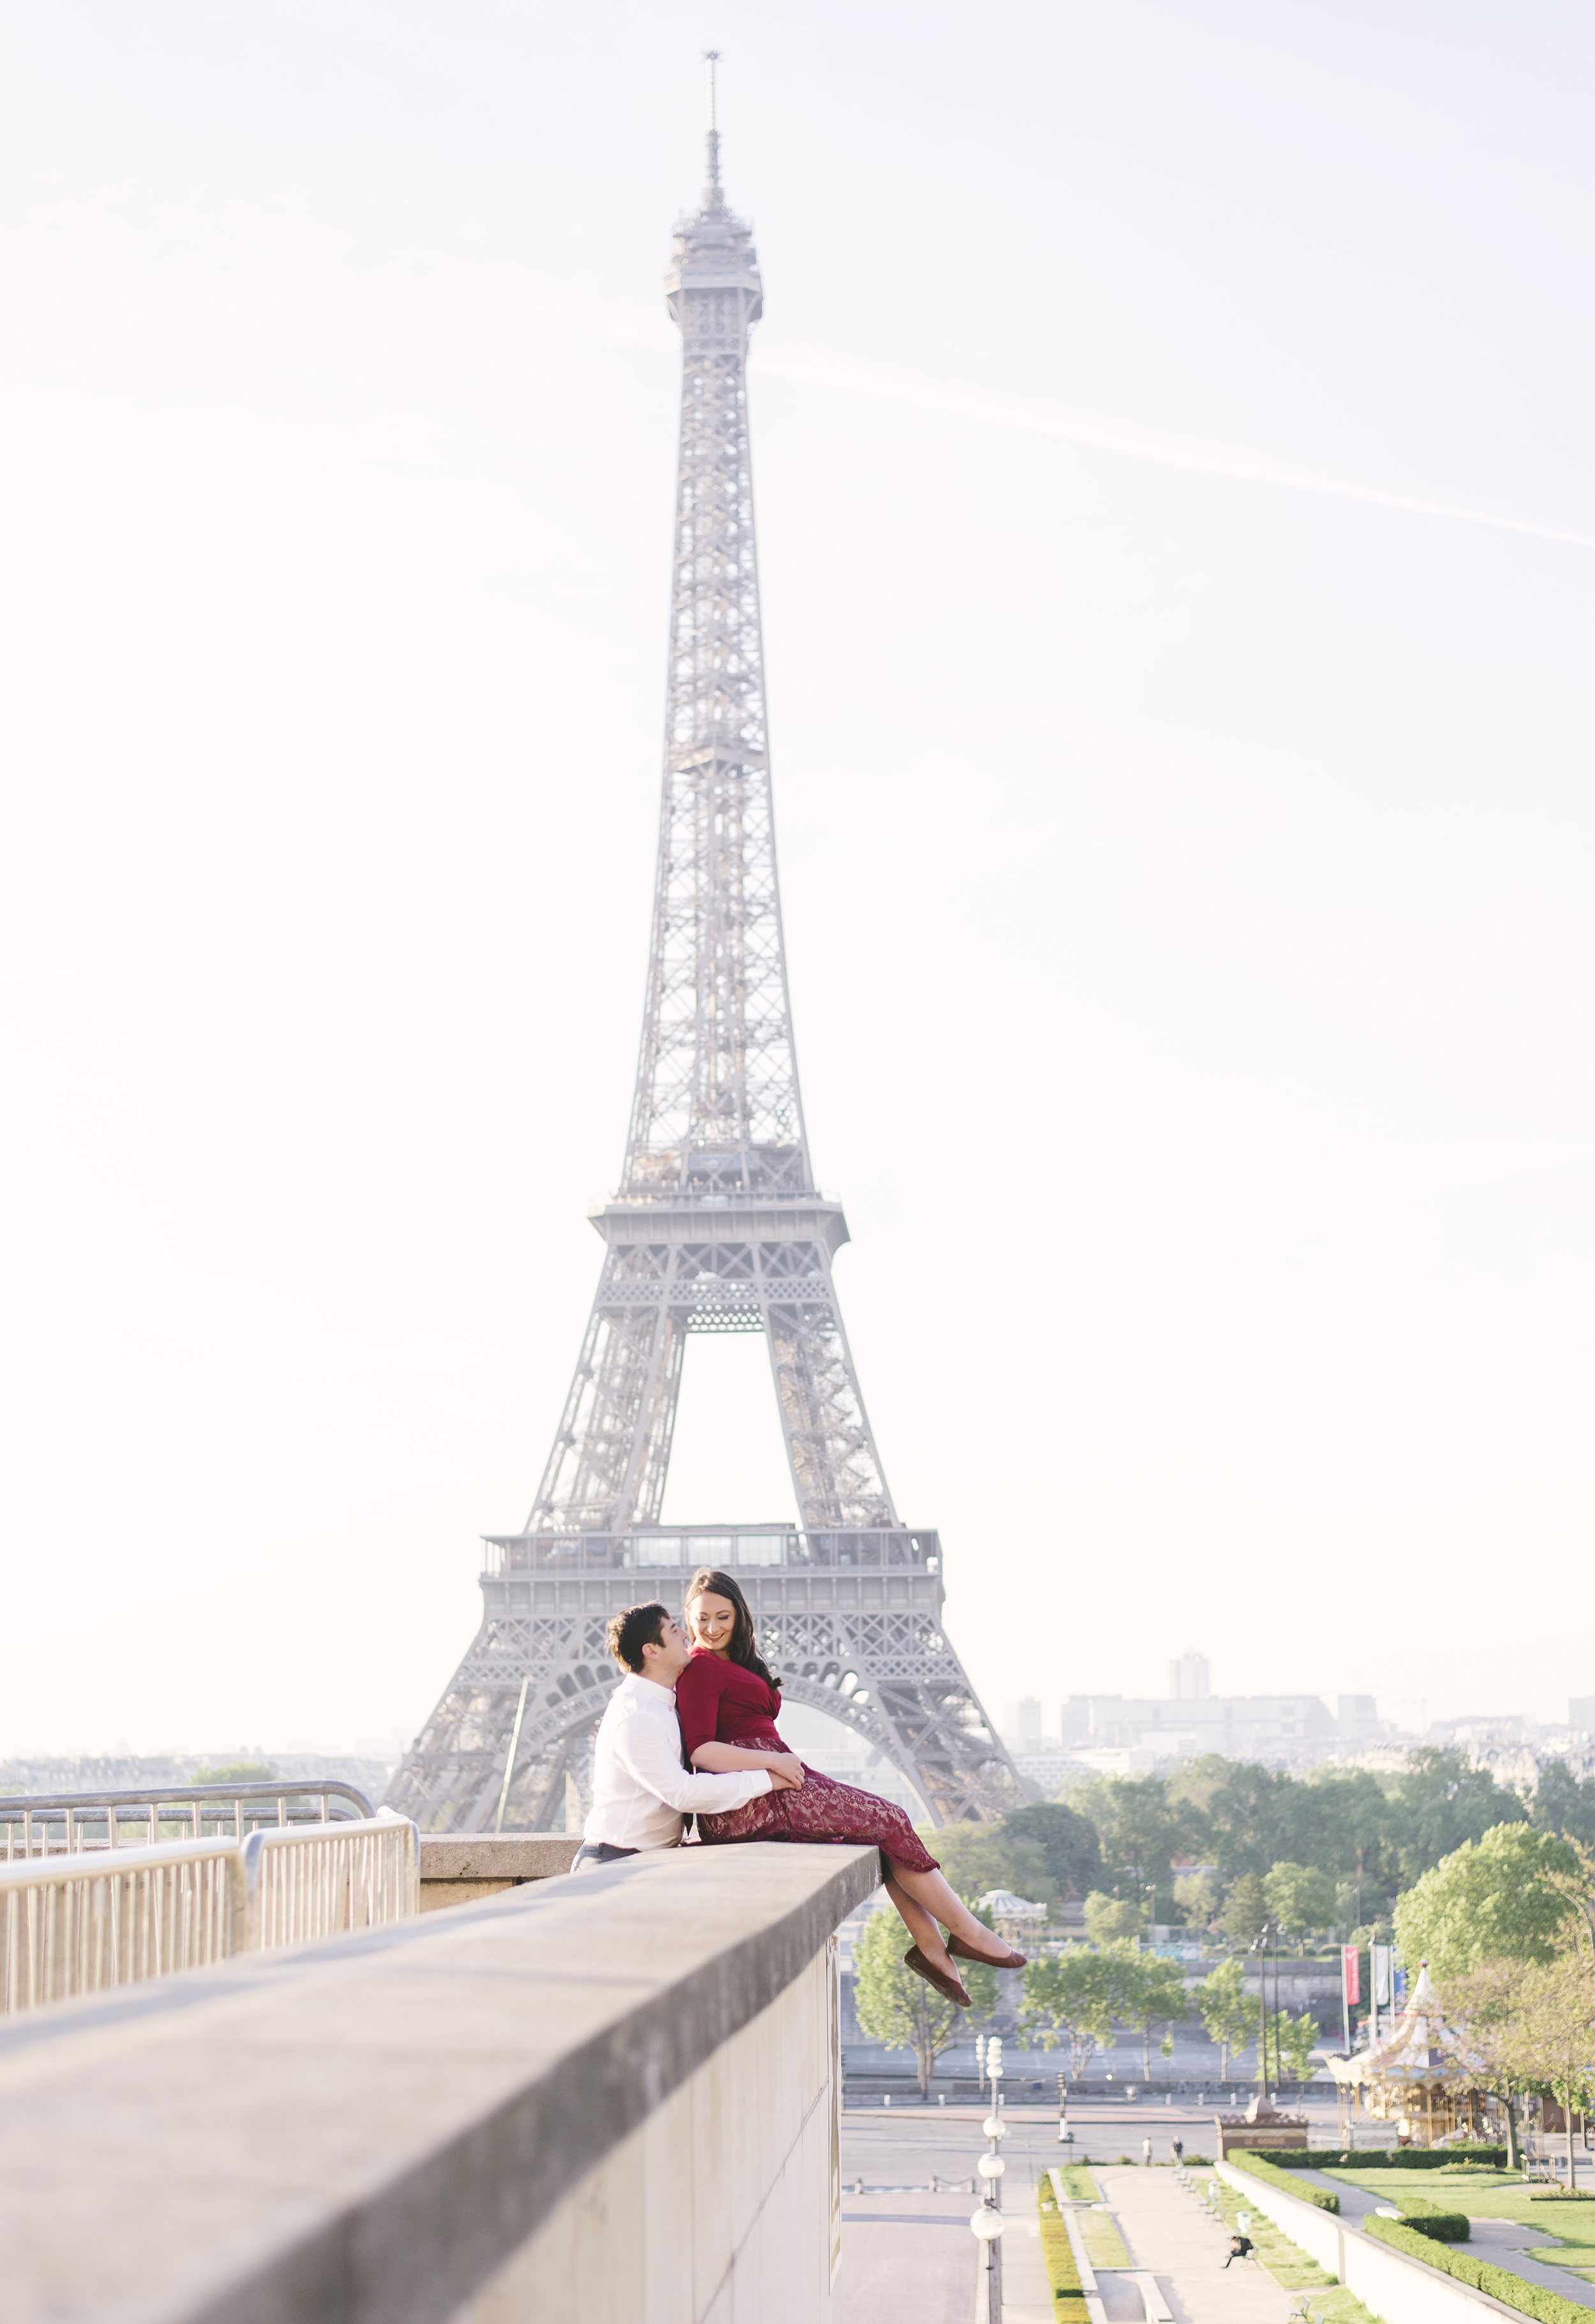 Couple-photoshoot-Anniversary-Paris-Eiffel-Tower-Trocadero069.jpg